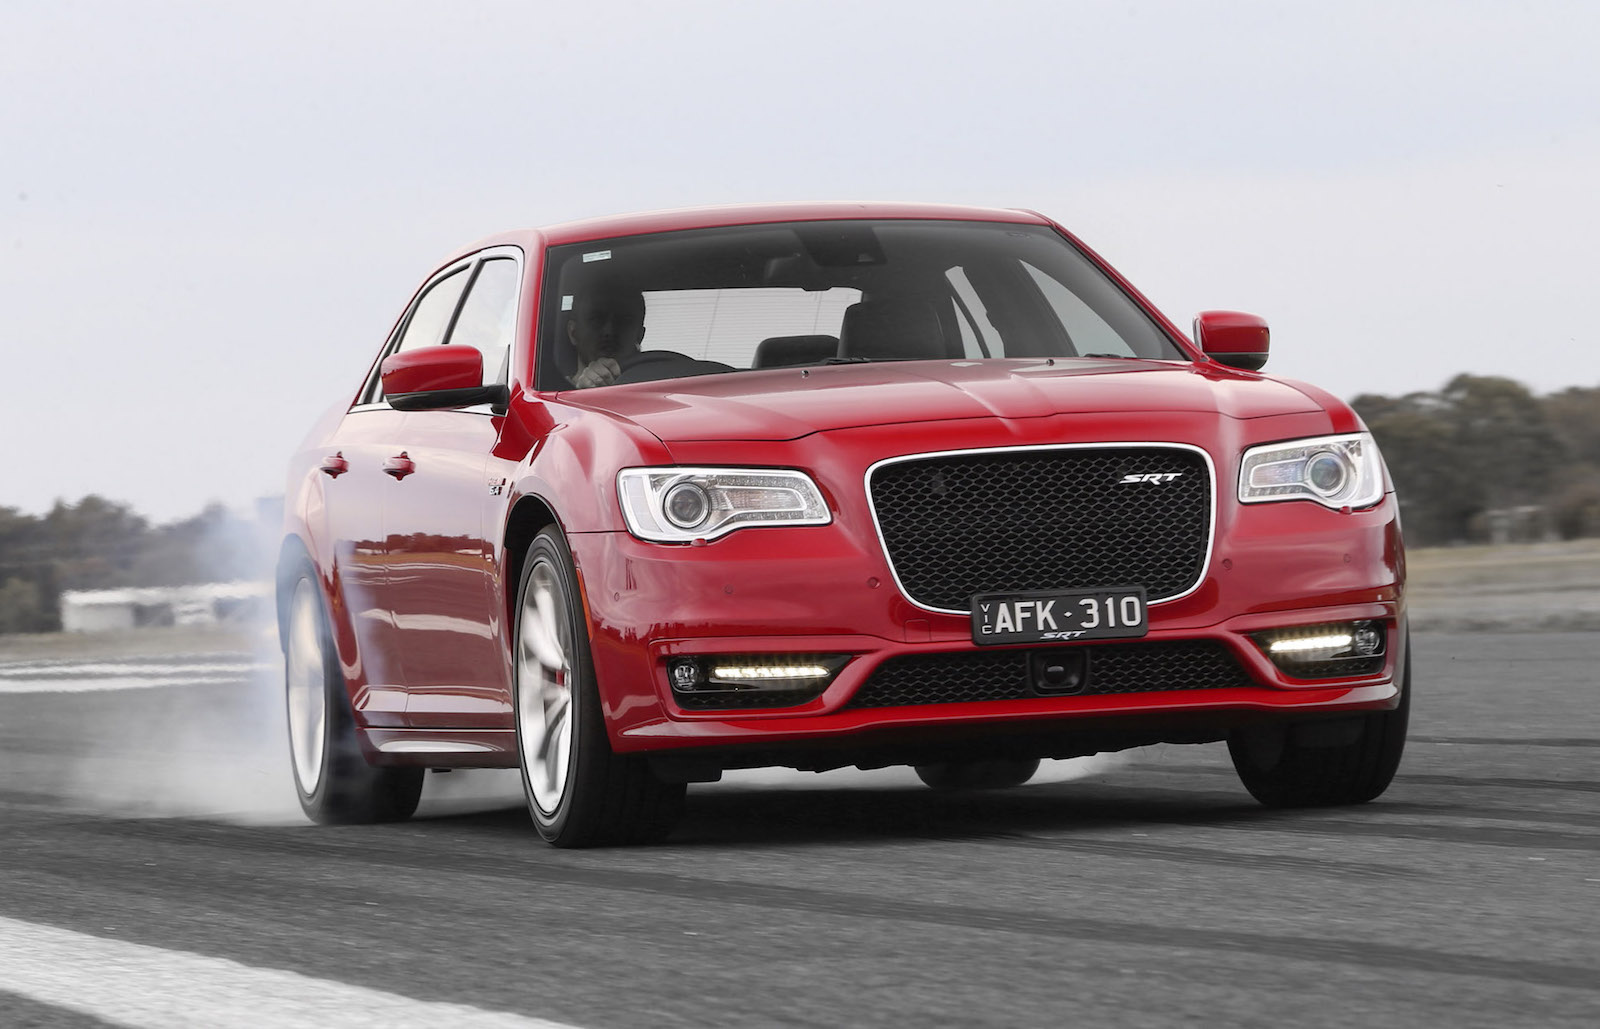 2015 chrysler 300 srt on sale in australia gets 8spd auto performancedrive. Black Bedroom Furniture Sets. Home Design Ideas